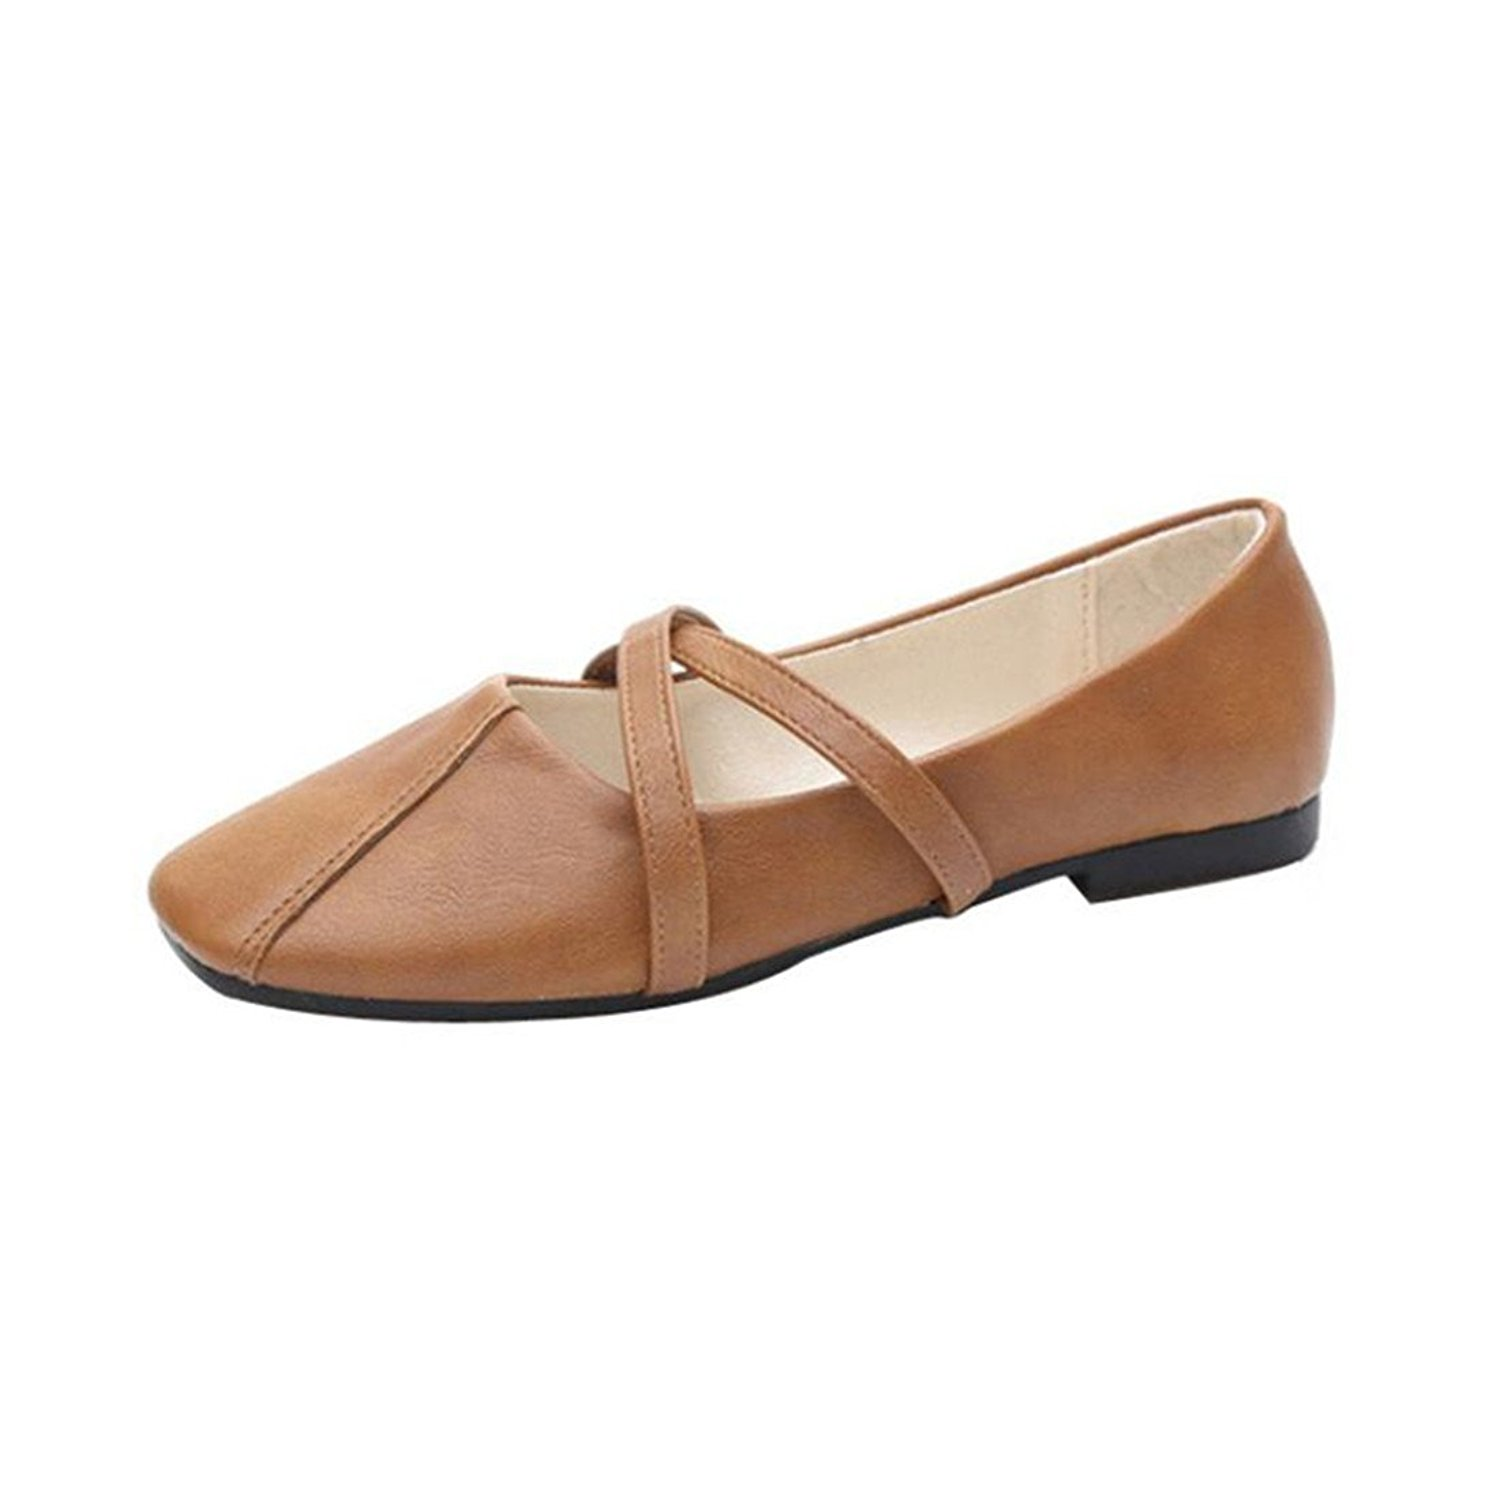 Amiley Hot Sale Women's Ballet Shoe Casual Loafers Moccasin Comfort Flat Sandals Slip-On